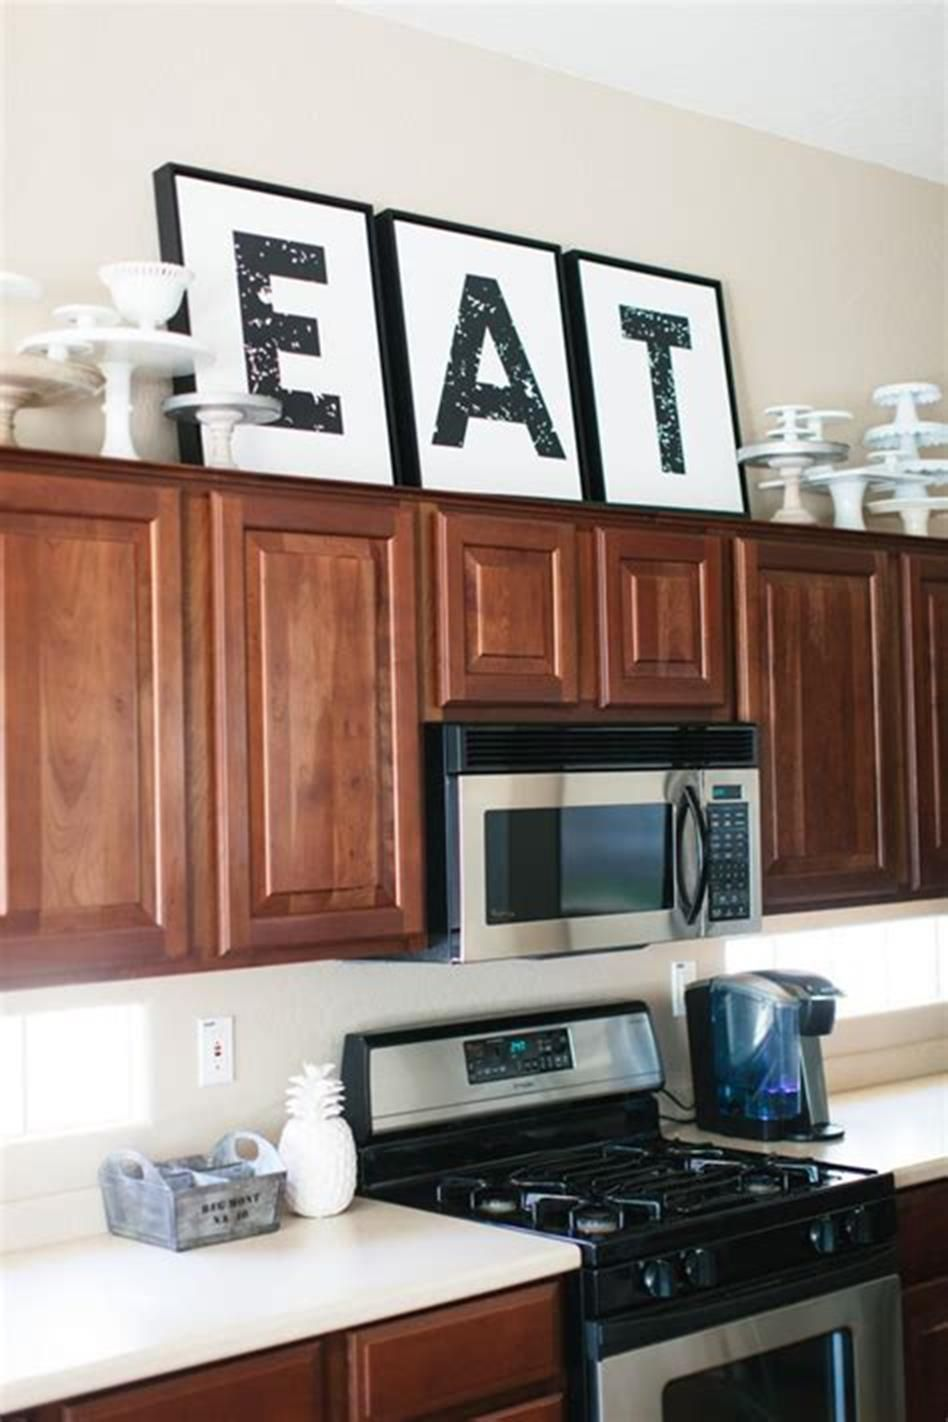 35 Awesome Decorating Above Kitchen Cabinets Ideas 17 in ...